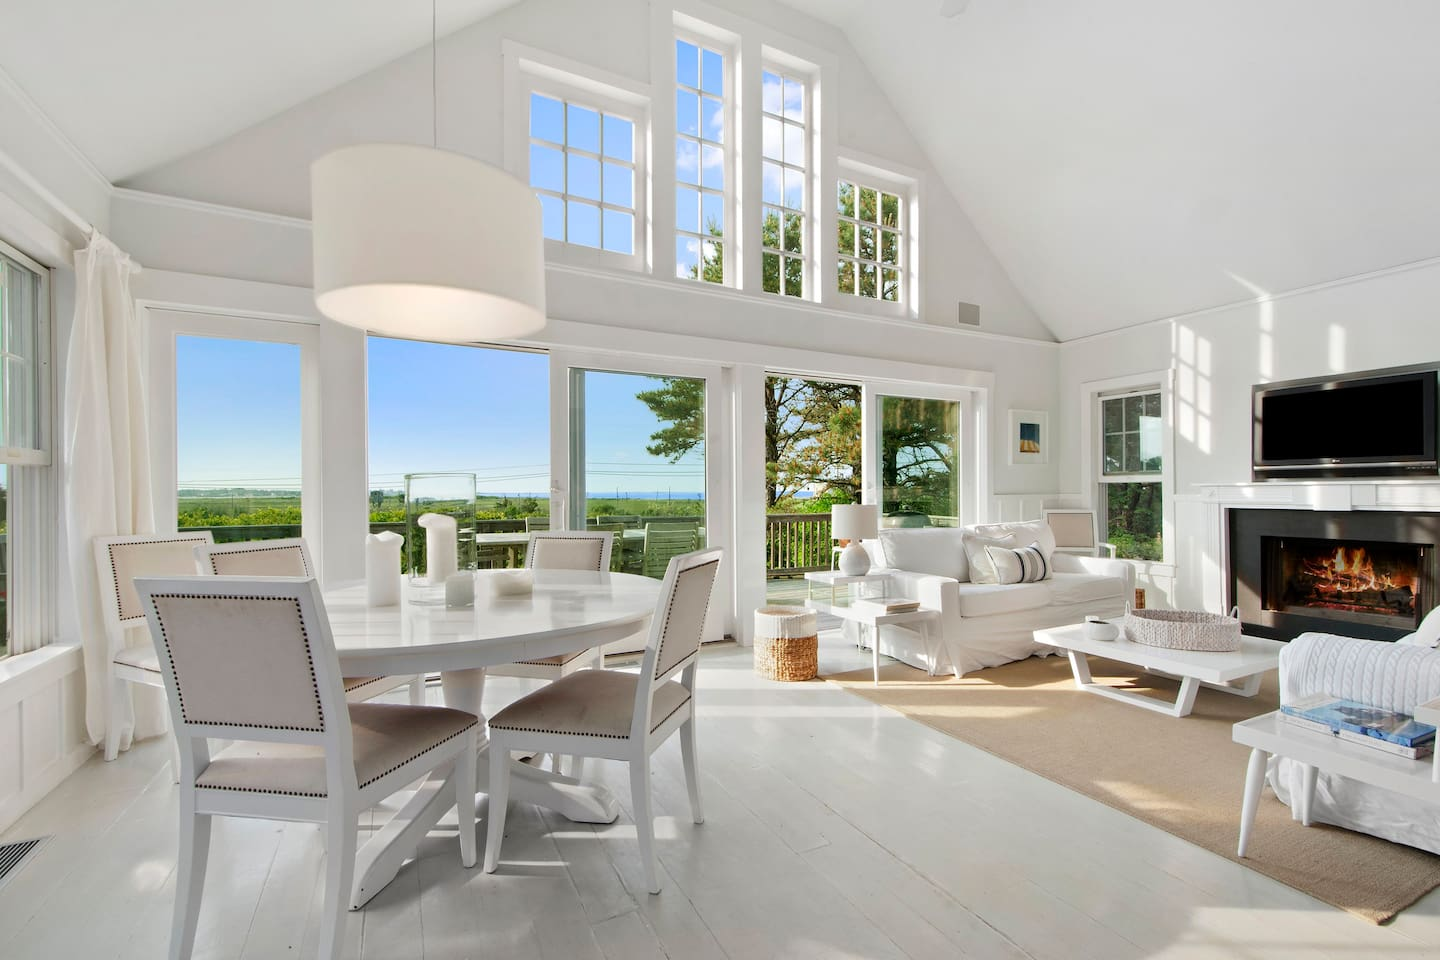 Bright and airy Living, Dining and Kitchen area